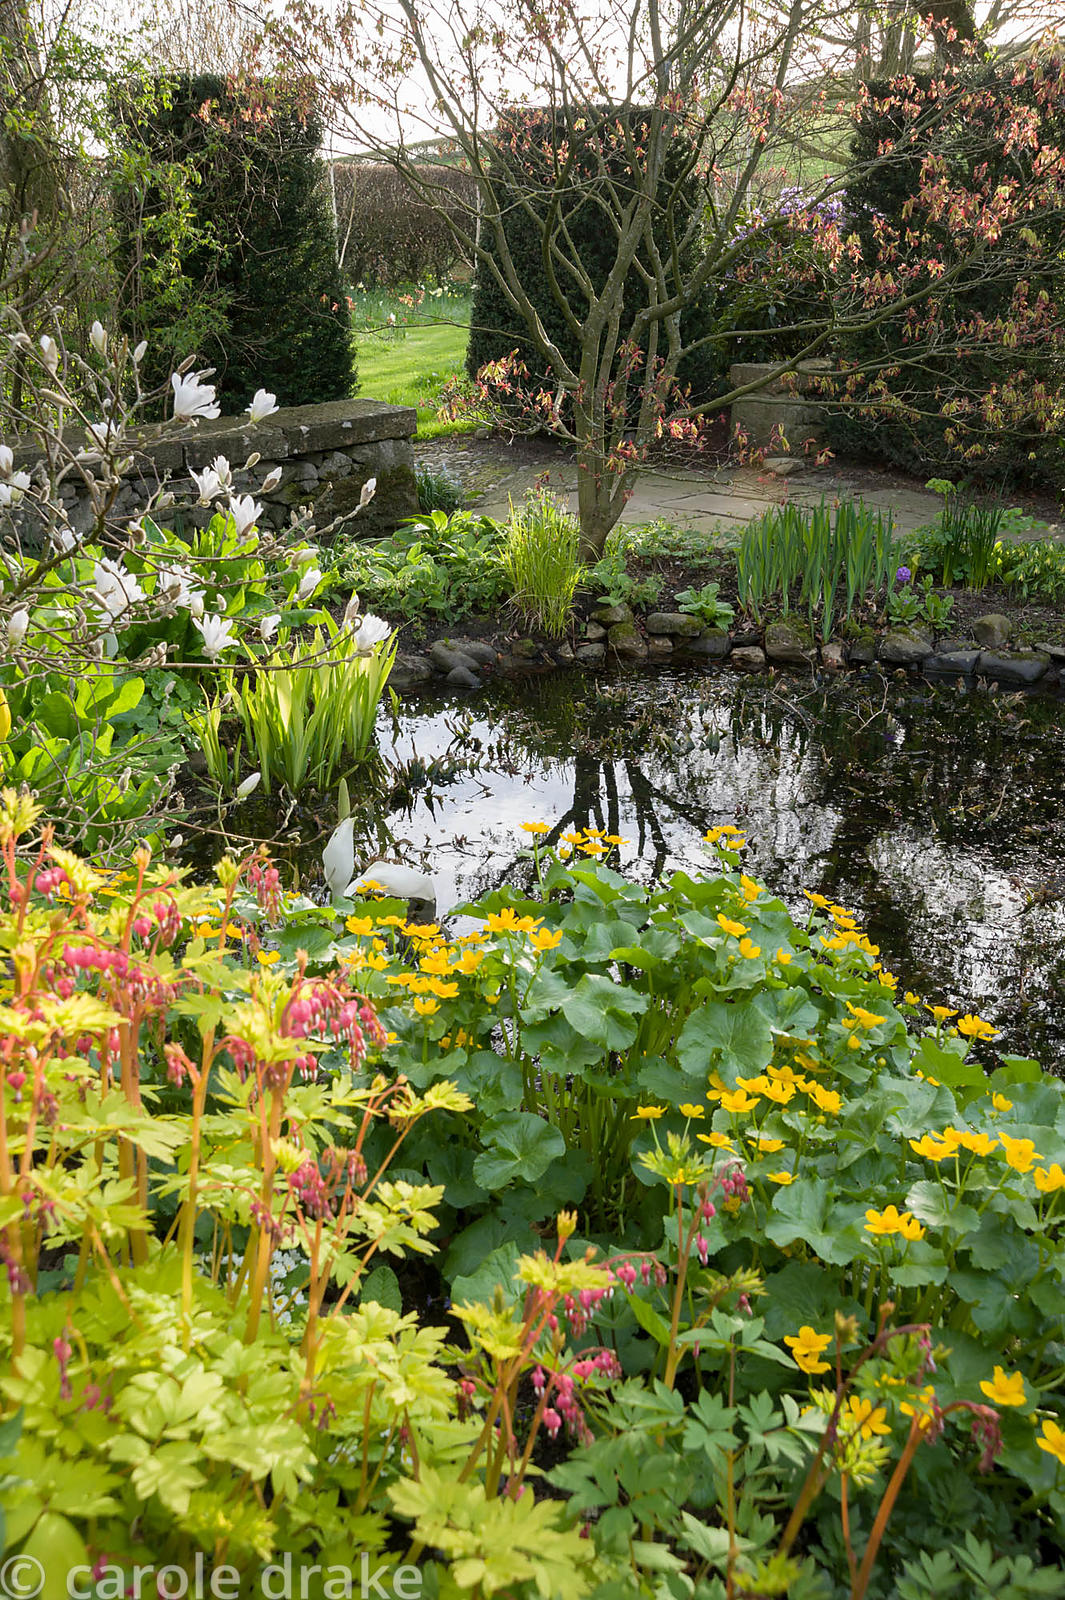 Pond with Dicentra spectabilis 'Gold Heart' and marsh marigolds, Caltha palustris, in the foreground, with primulas below an ...